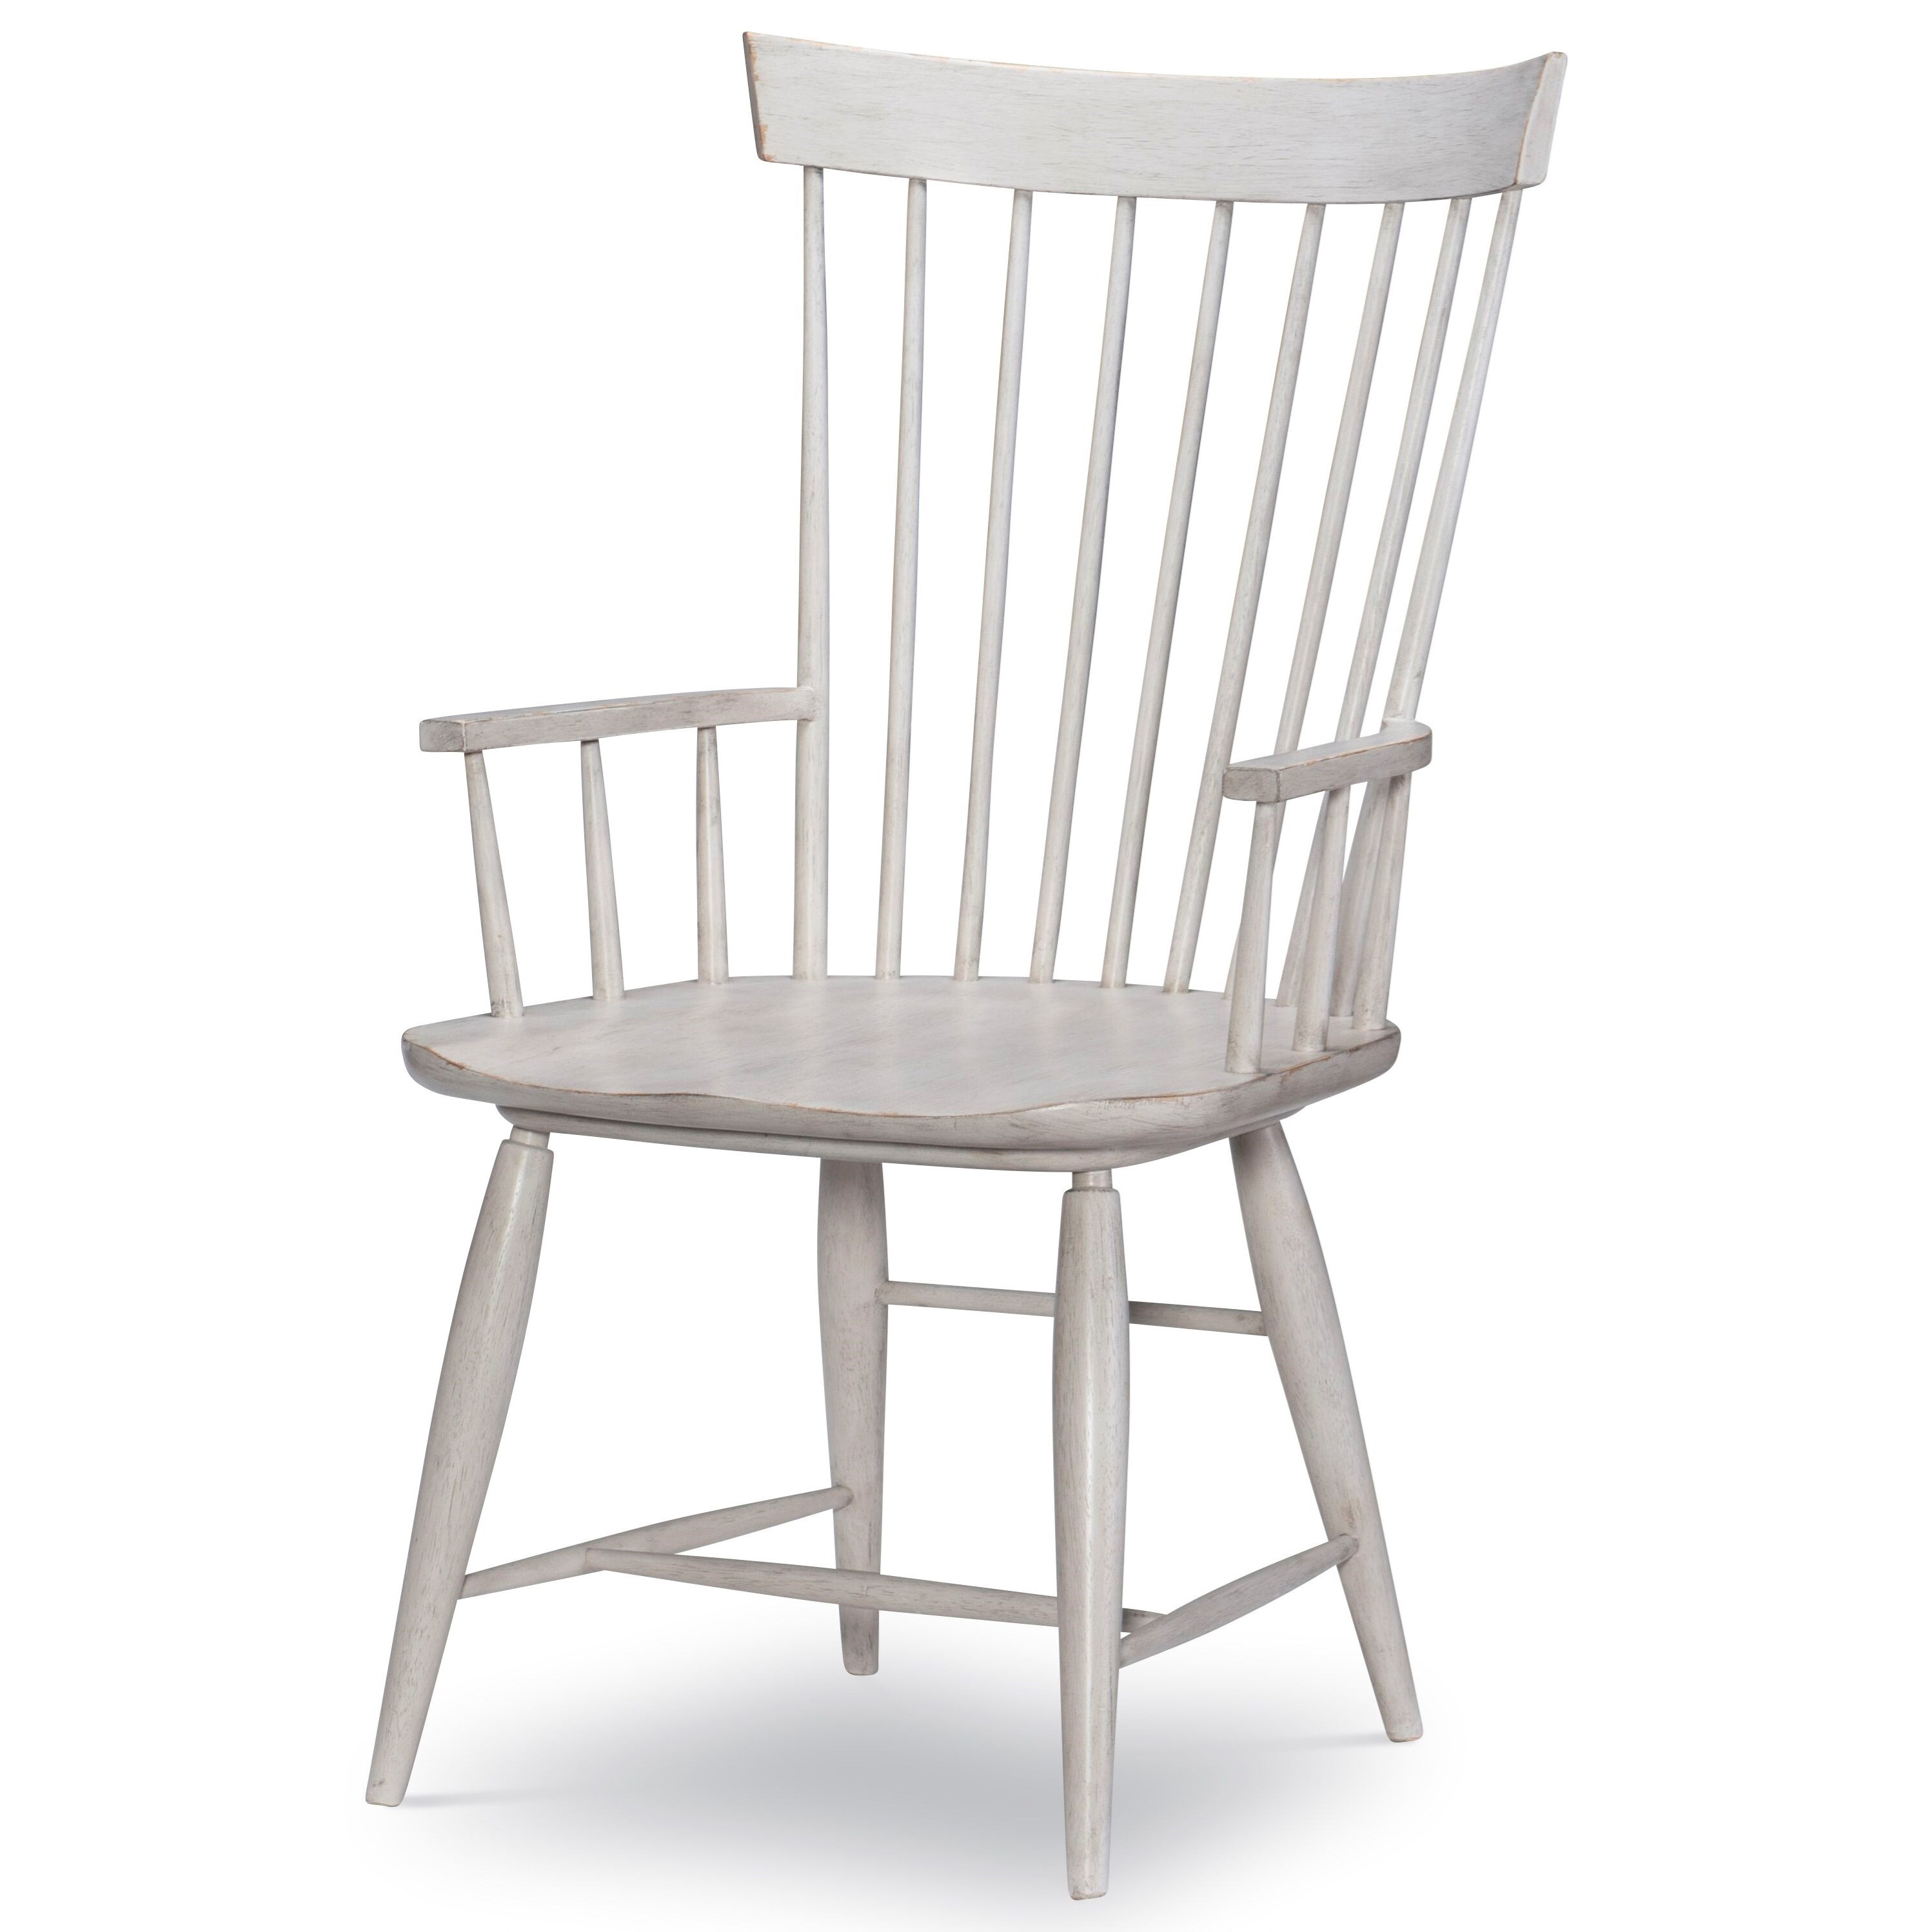 Belhaven Windsor Arm Chair by Legacy Classic at Johnny Janosik